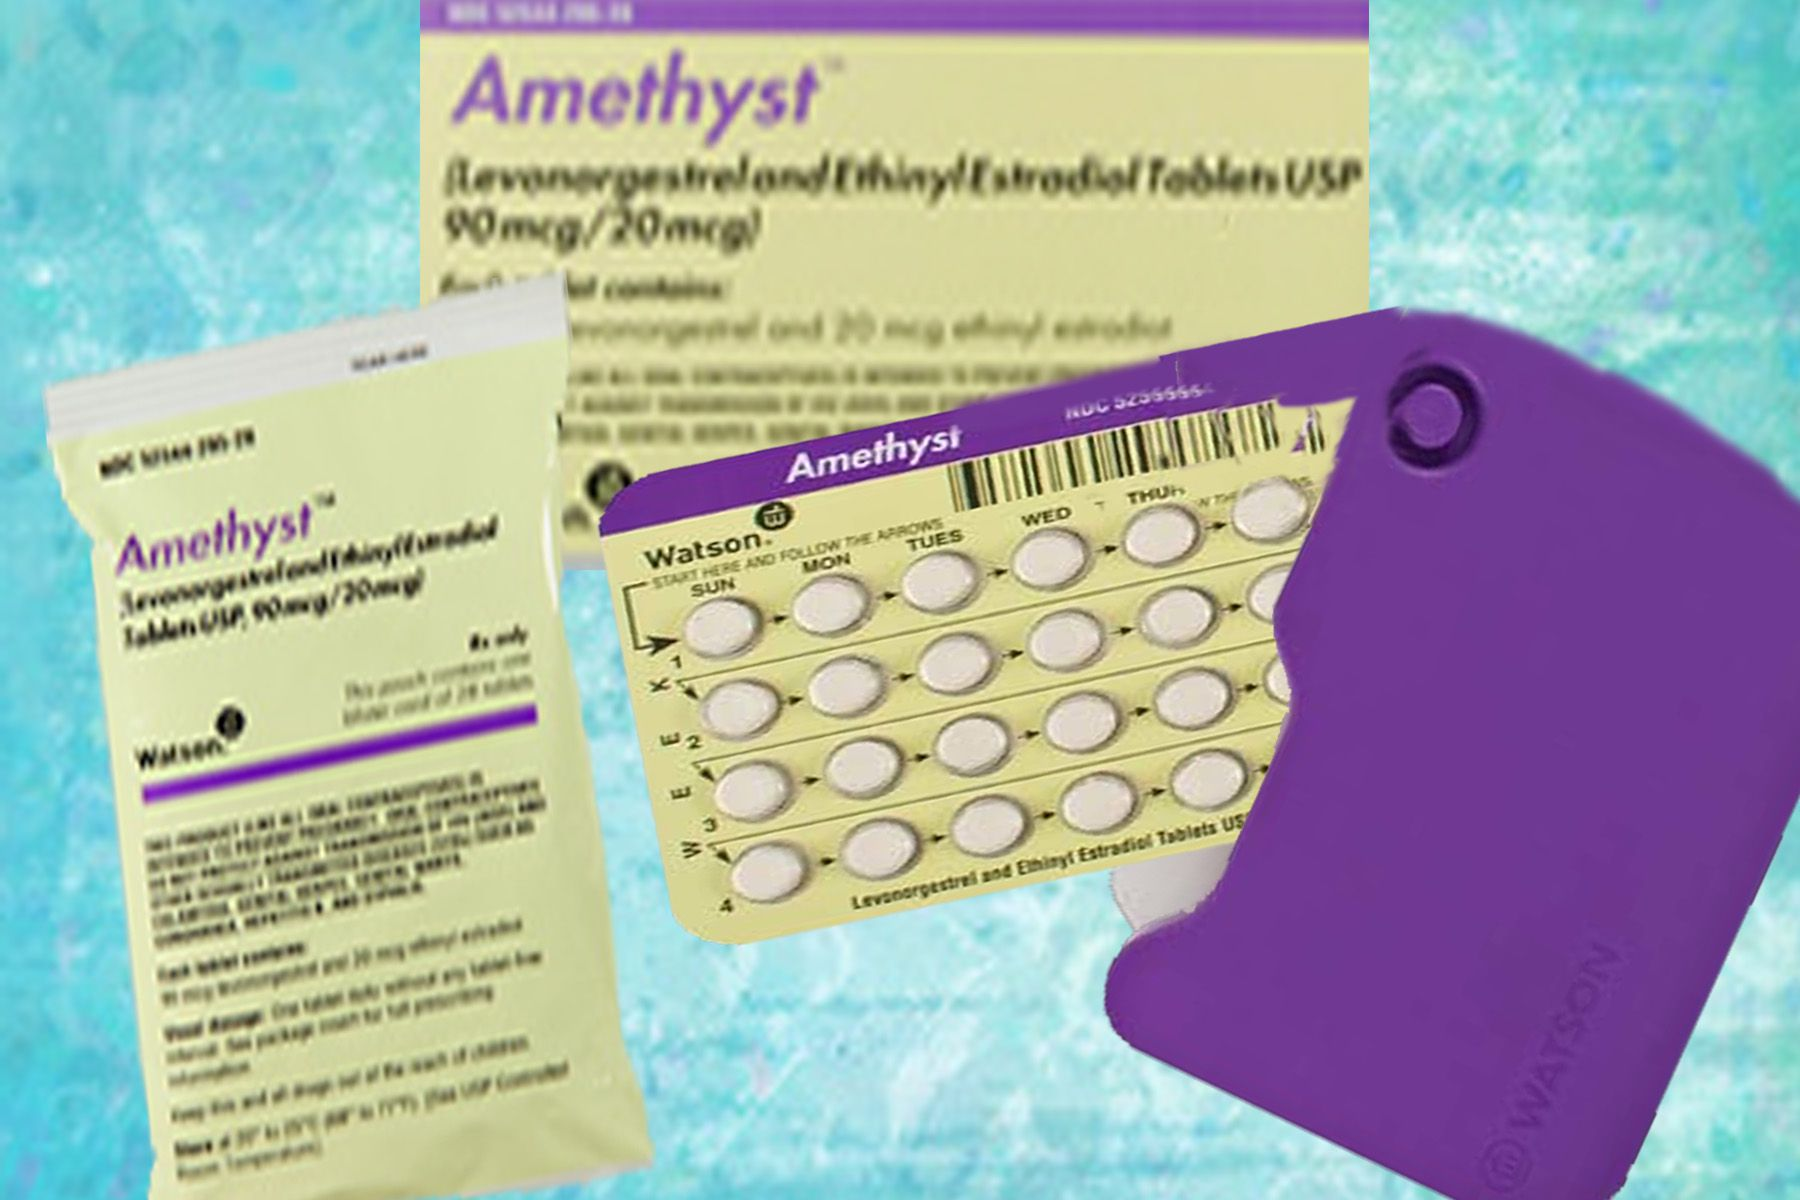 Amethyst Continuous Birth Control Pill Generic Lybrel